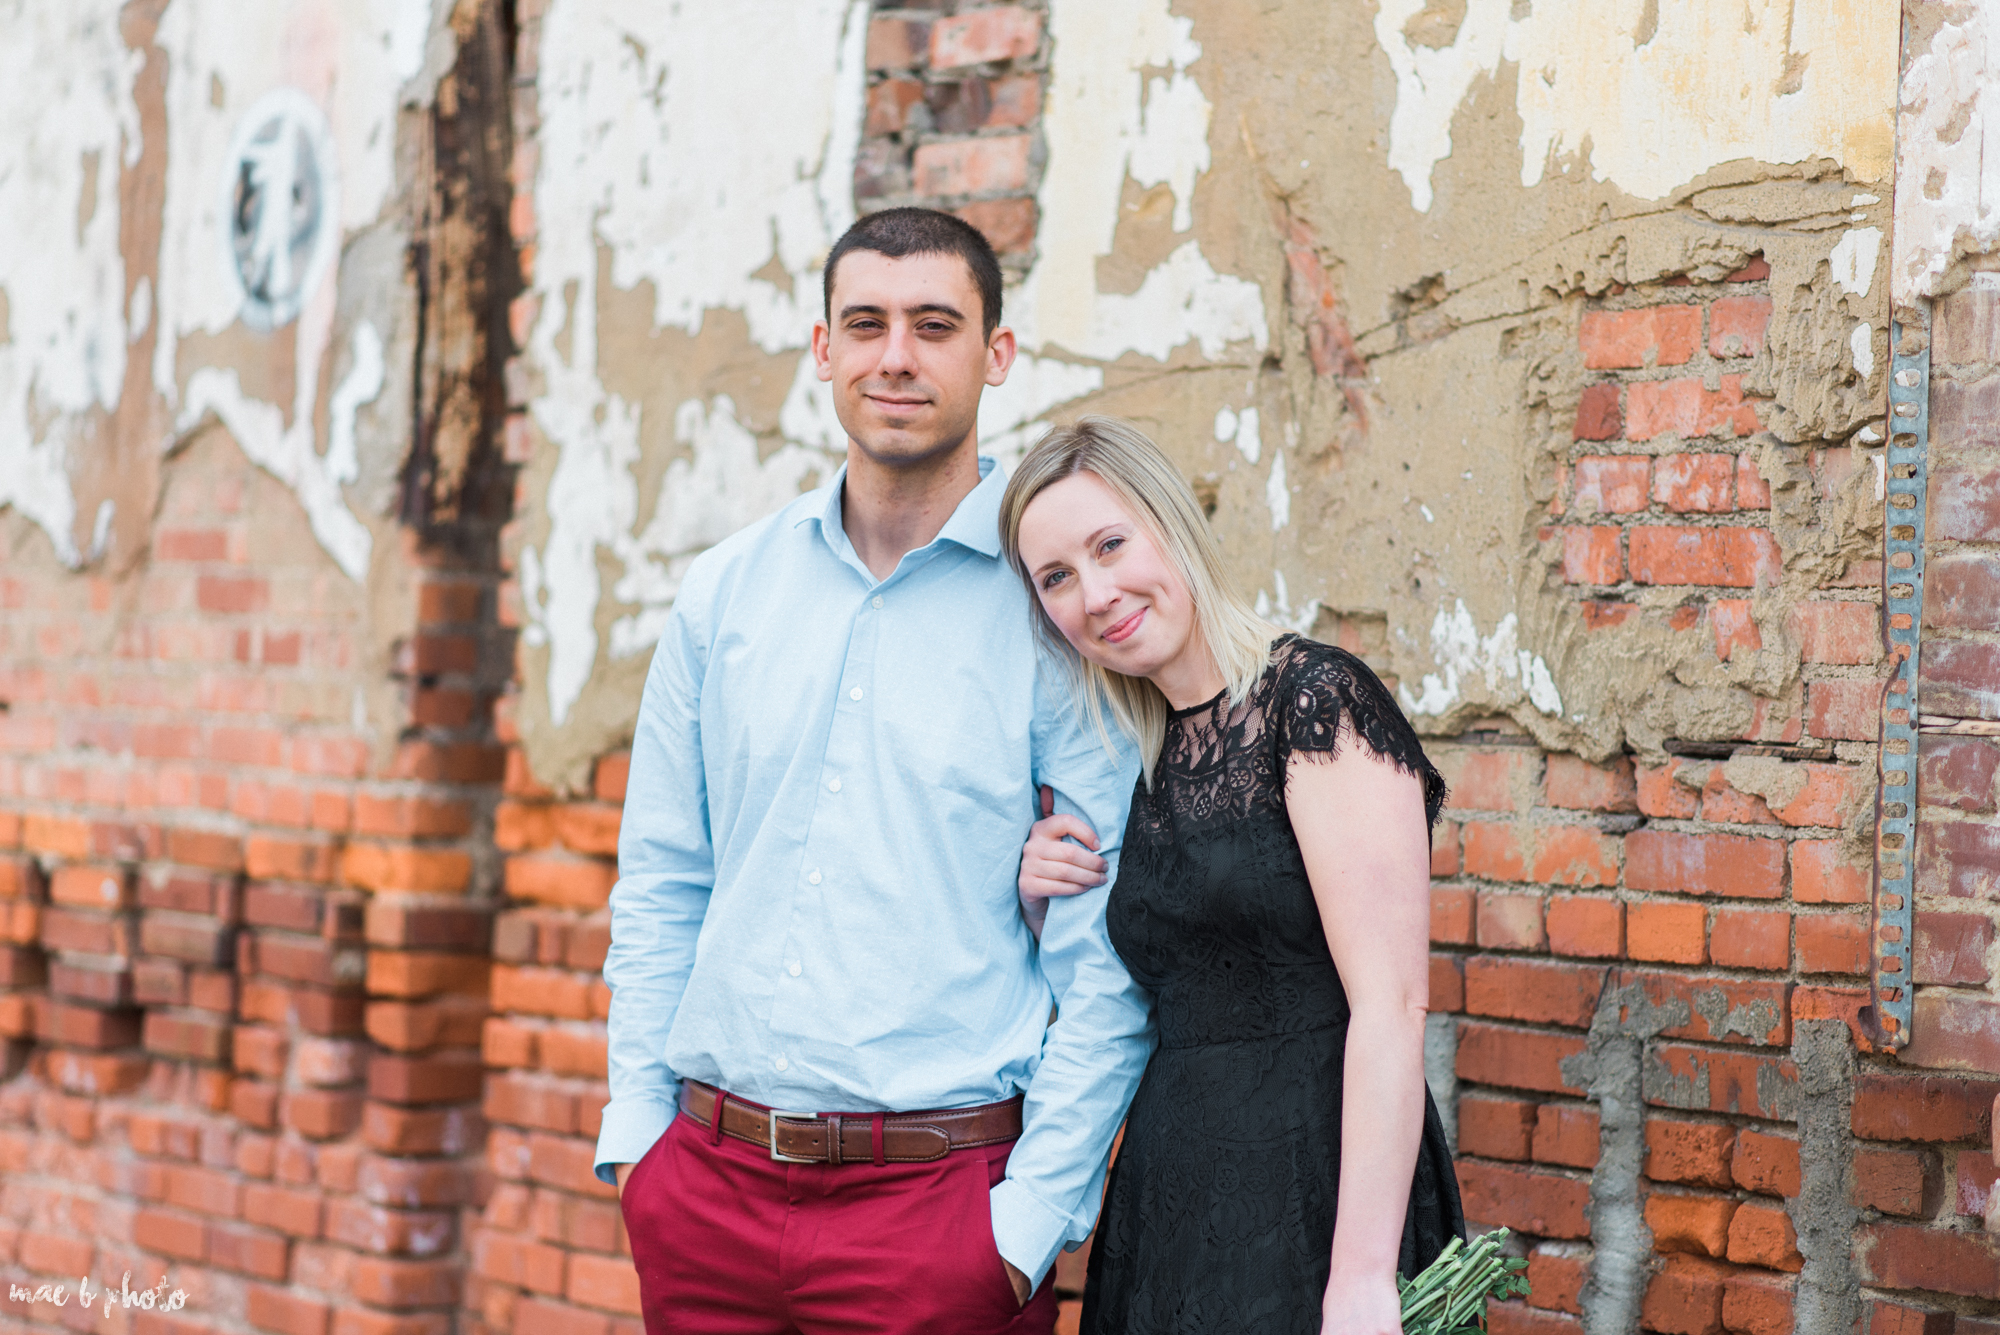 Emily & Michael's Lifestyle Engagement Session in Youngstown Ohio by Mae B Photo-48.jpg